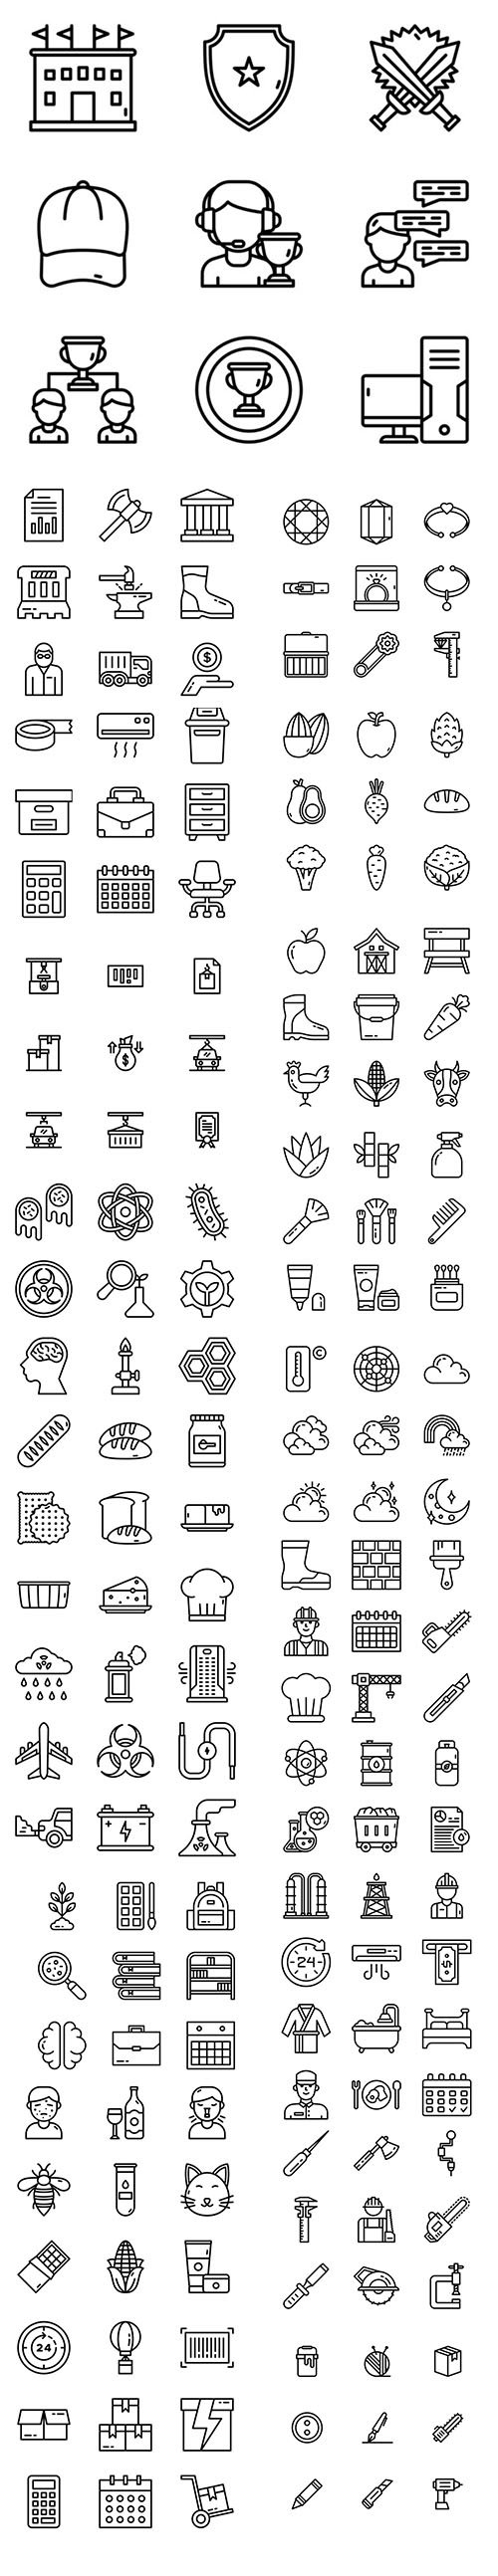 More 900 Icons in 1 Pack!